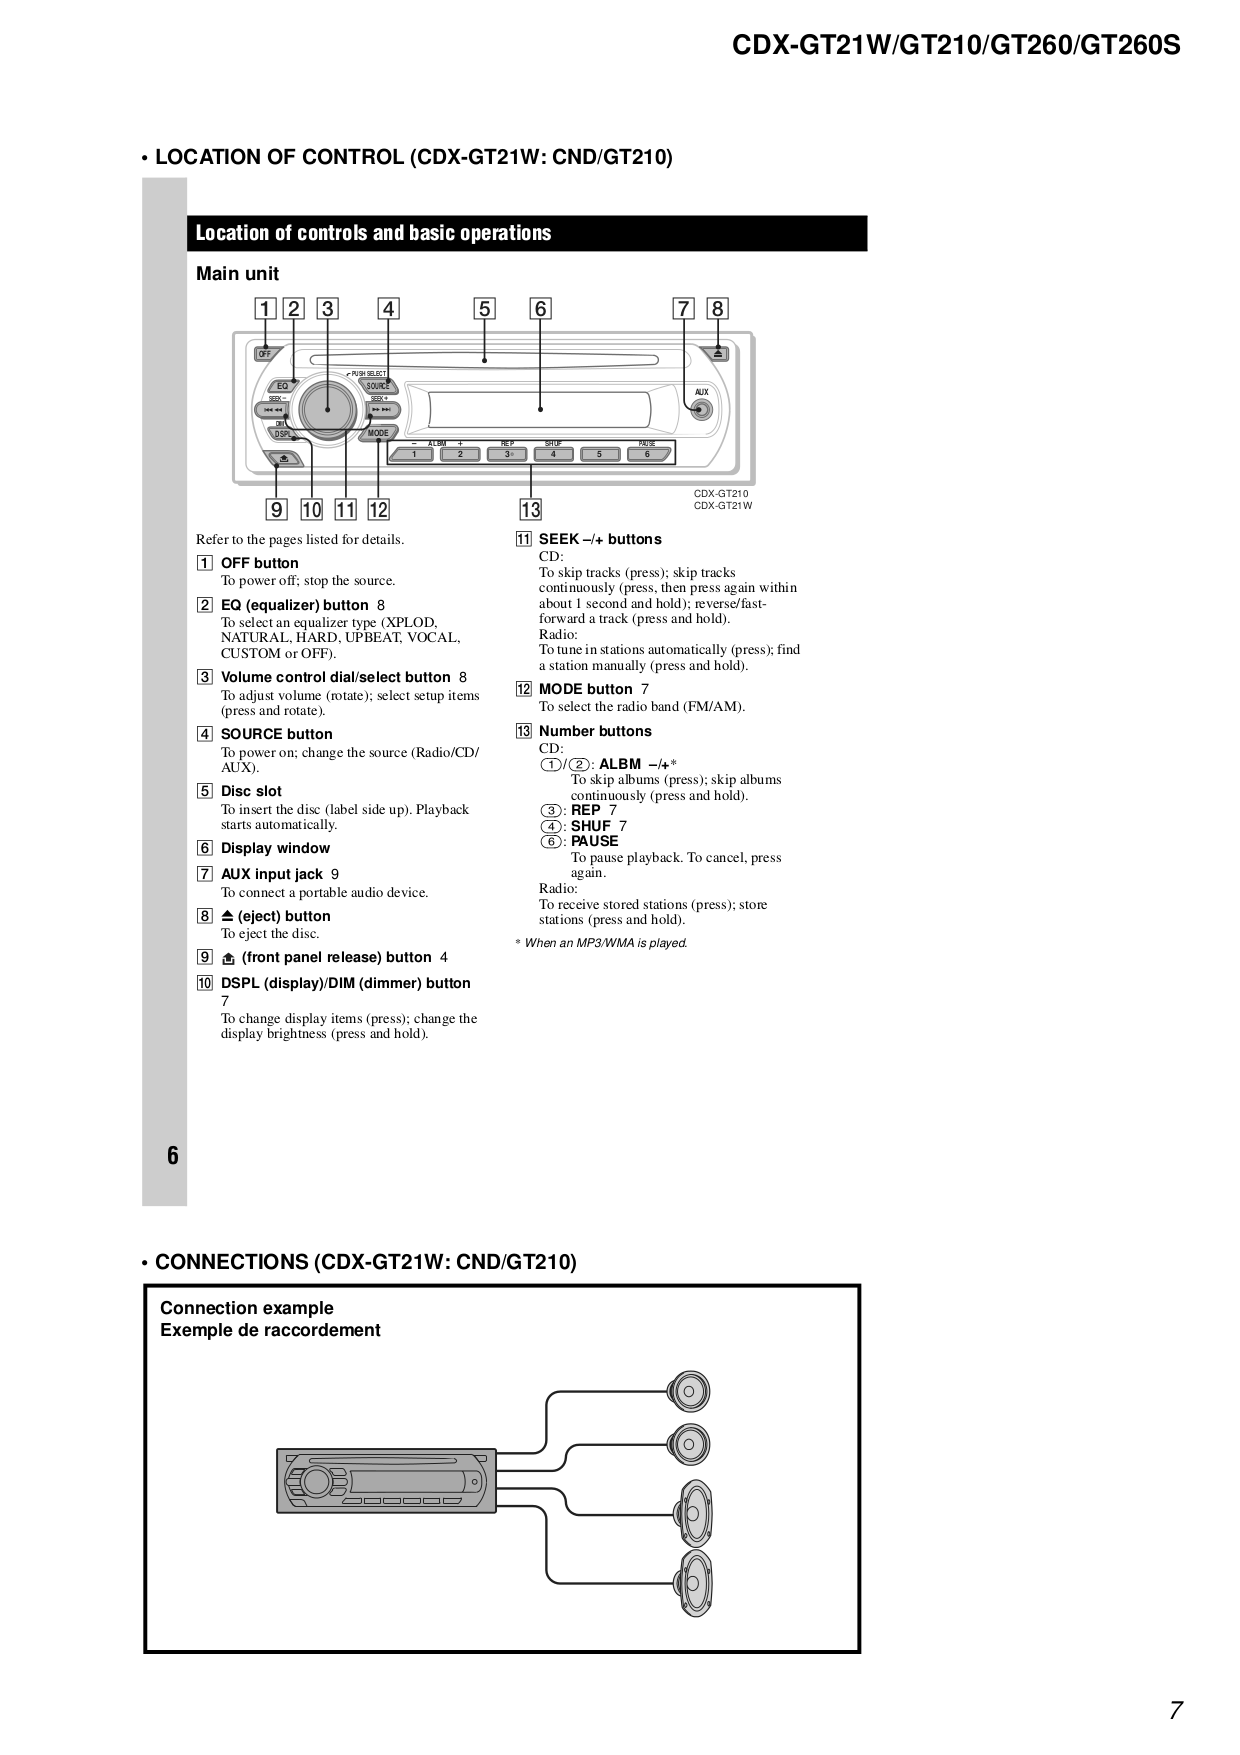 cdx gt21w gt210 gt260.pdf 6?resize=665%2C941 wiring diagram for sony xplod cdx gt210 wiring diagram sony cdx gt210 wiring harness at fashall.co